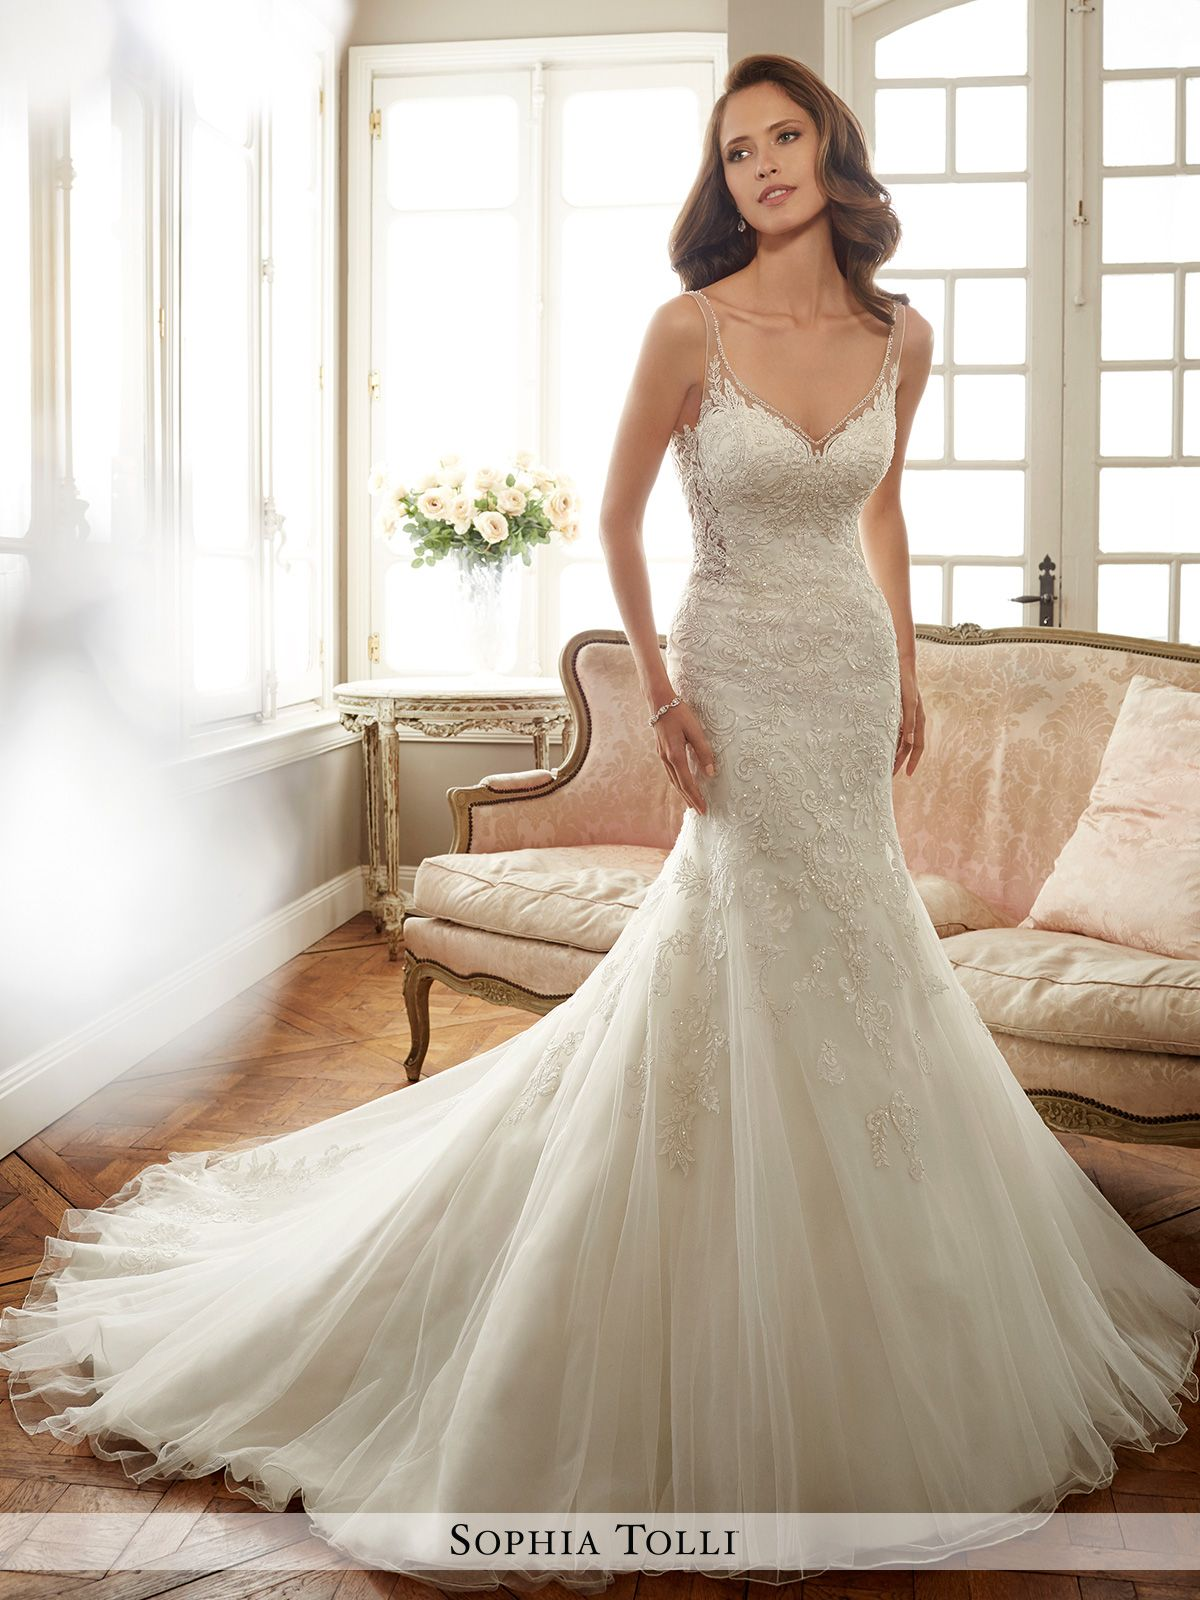 17361eb9d8 Sleeveless misty tulle fit and flare gown with slender illusion shoulder  straps and soft sweetheart illusion neckline edged with crystal  hand-beading